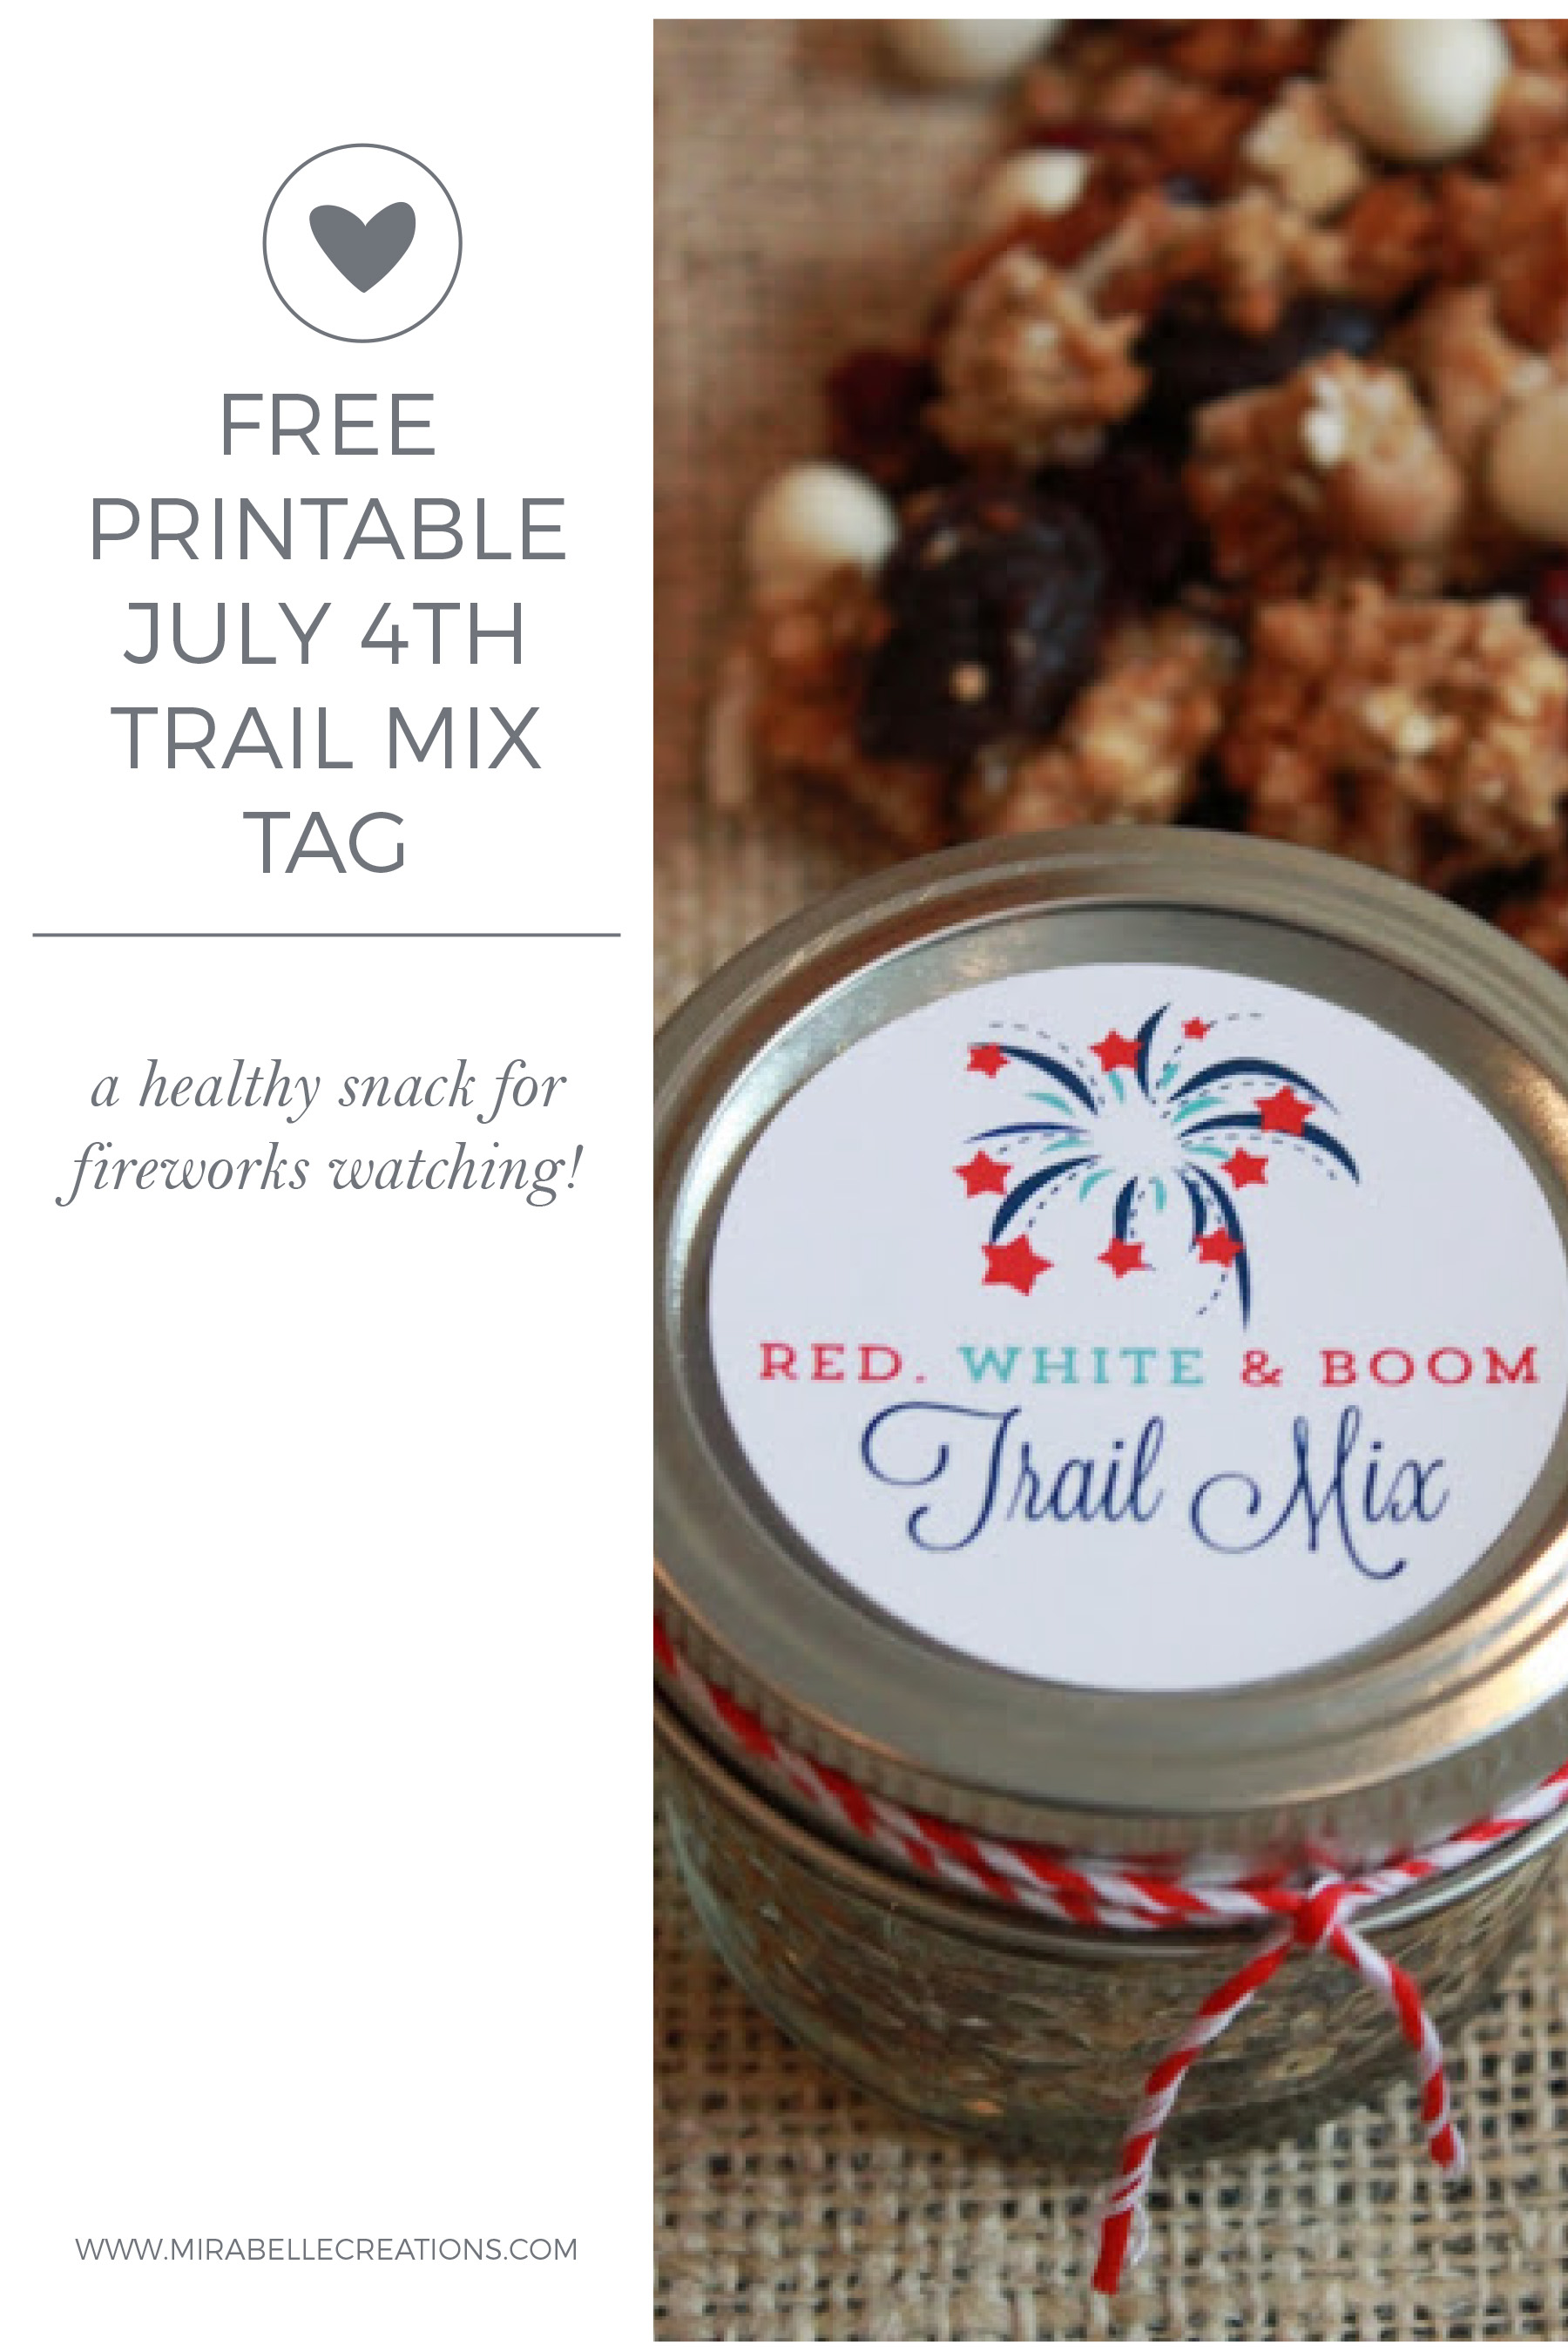 Free Printable July 4th Trail Mix Tag by Mirabelle Creations